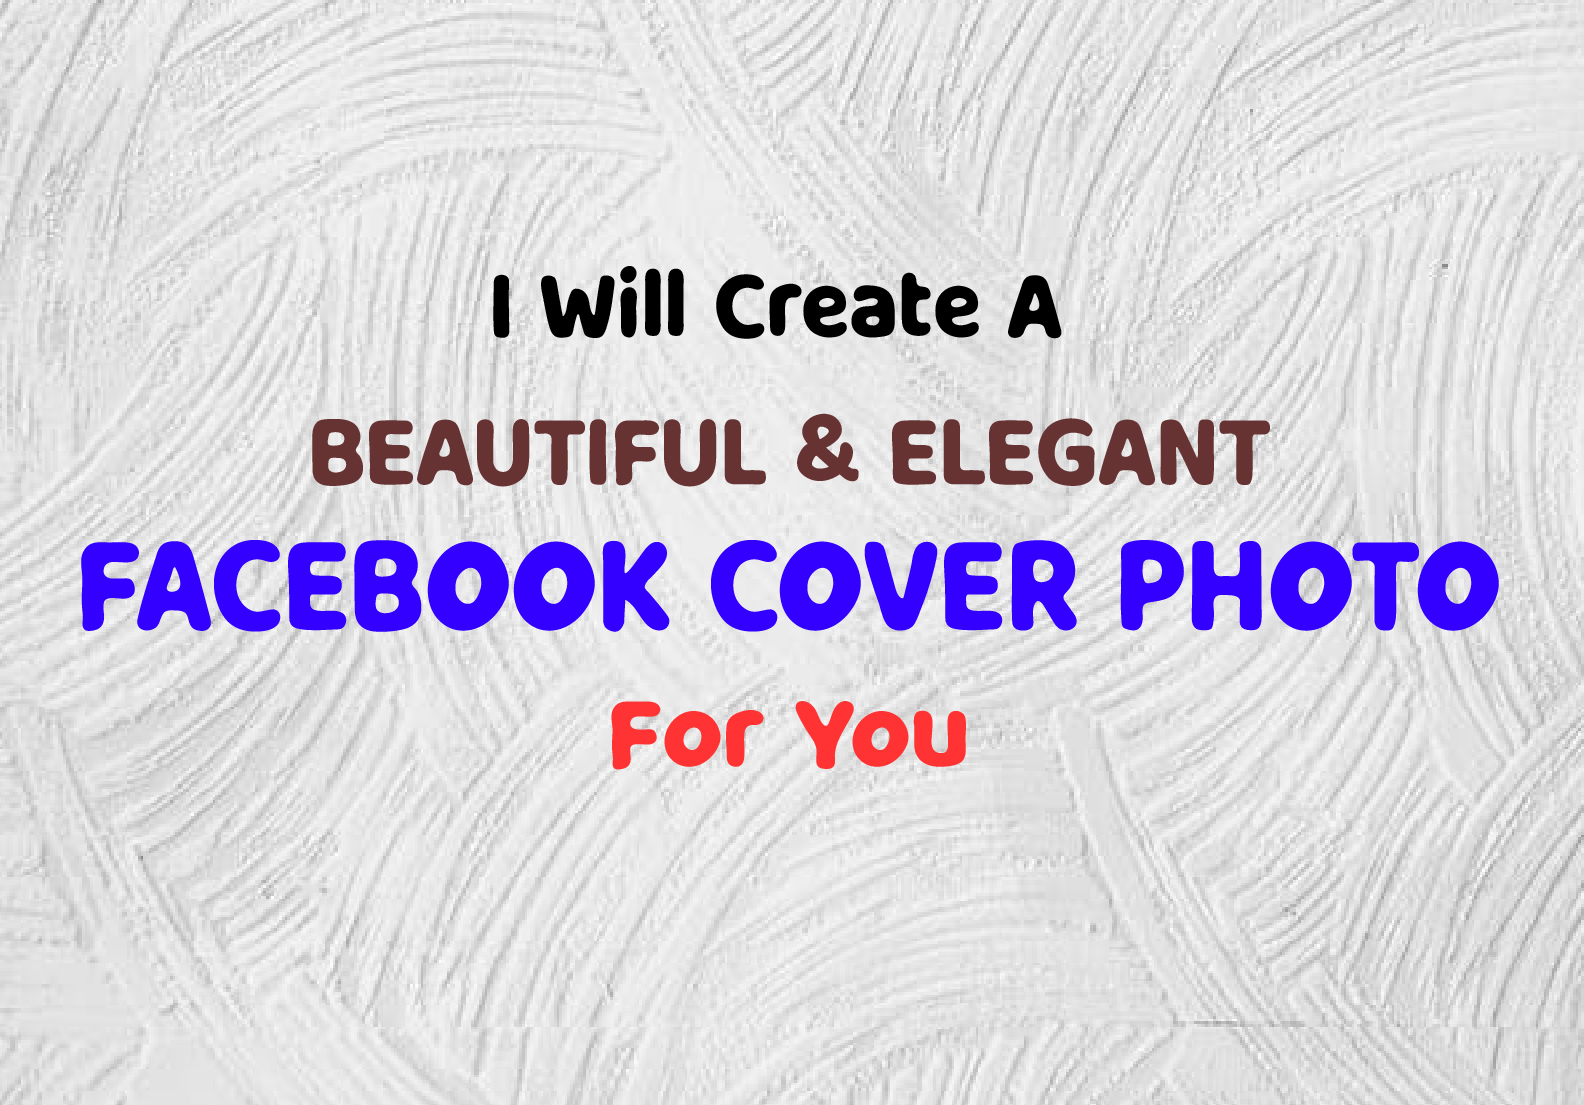 I will create a beautiful & elegant facebook cover photo for you.